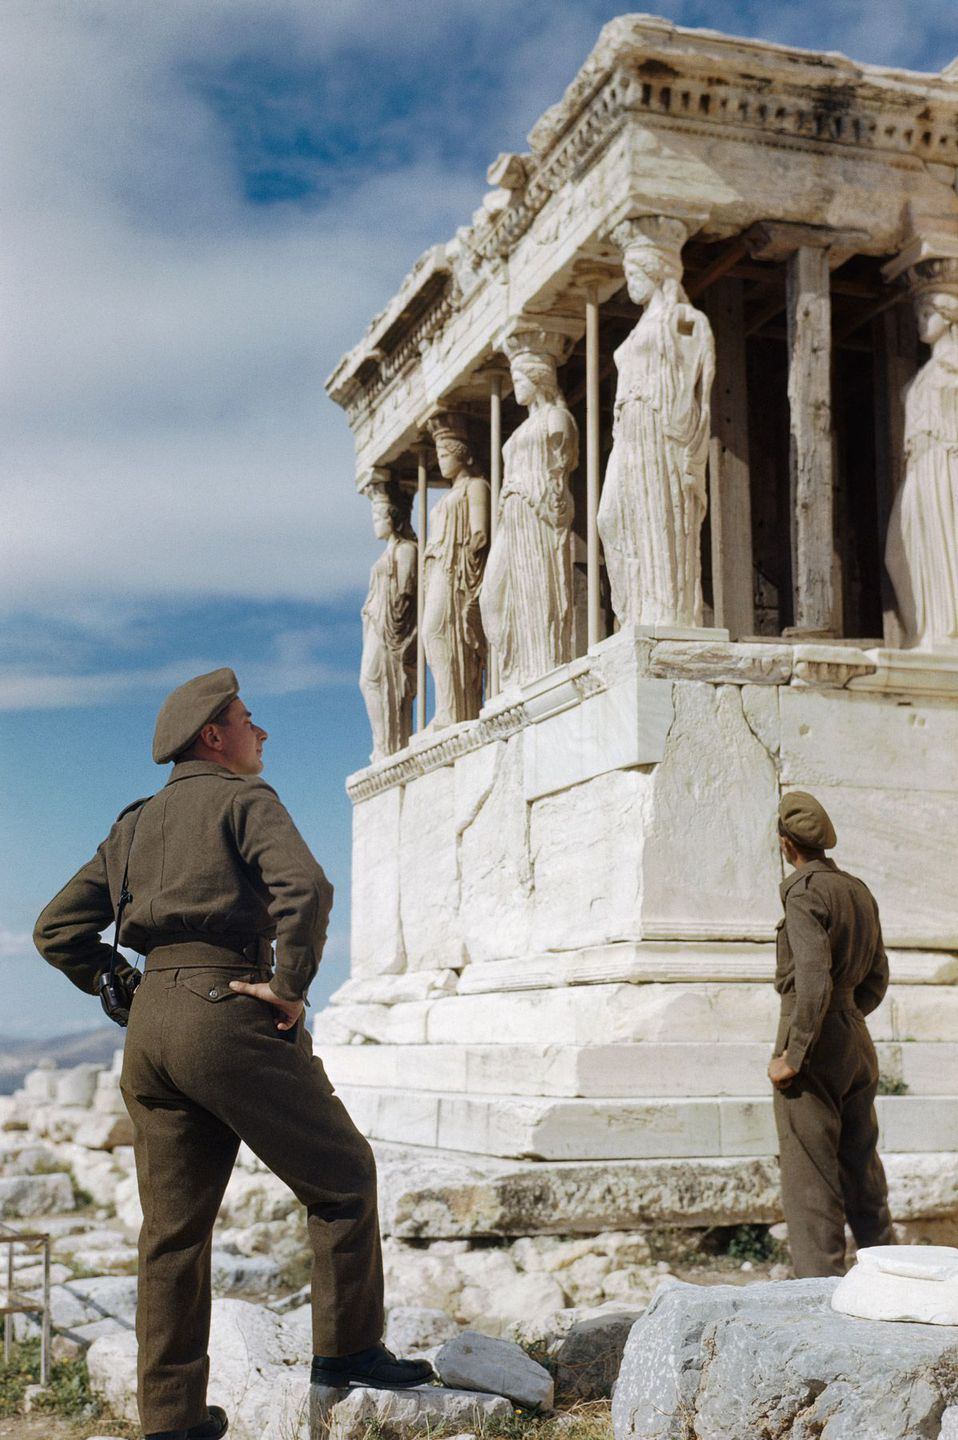 October 1944 British soldiers admire the Caryatids on the Acropolis while sightseeing in Athens.